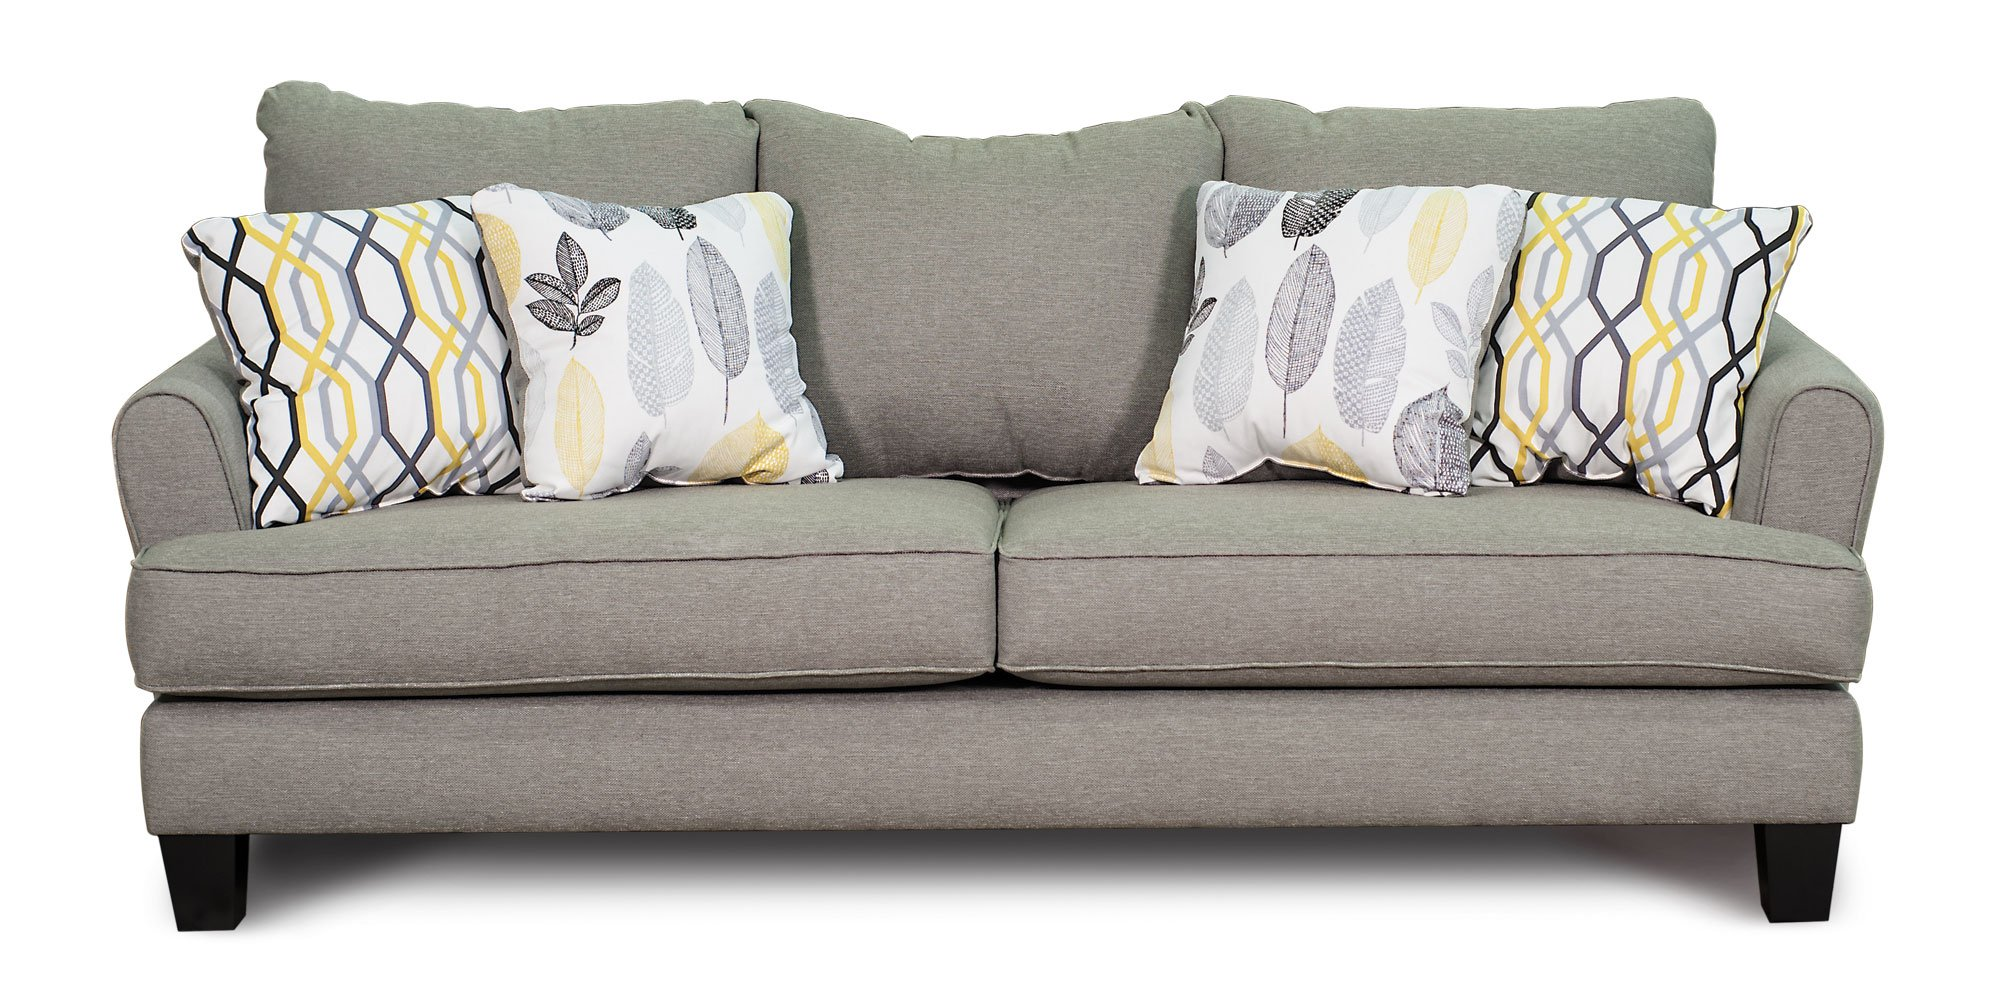 Stone Gray Upholstered Casual Contemporary 7 Piece Room